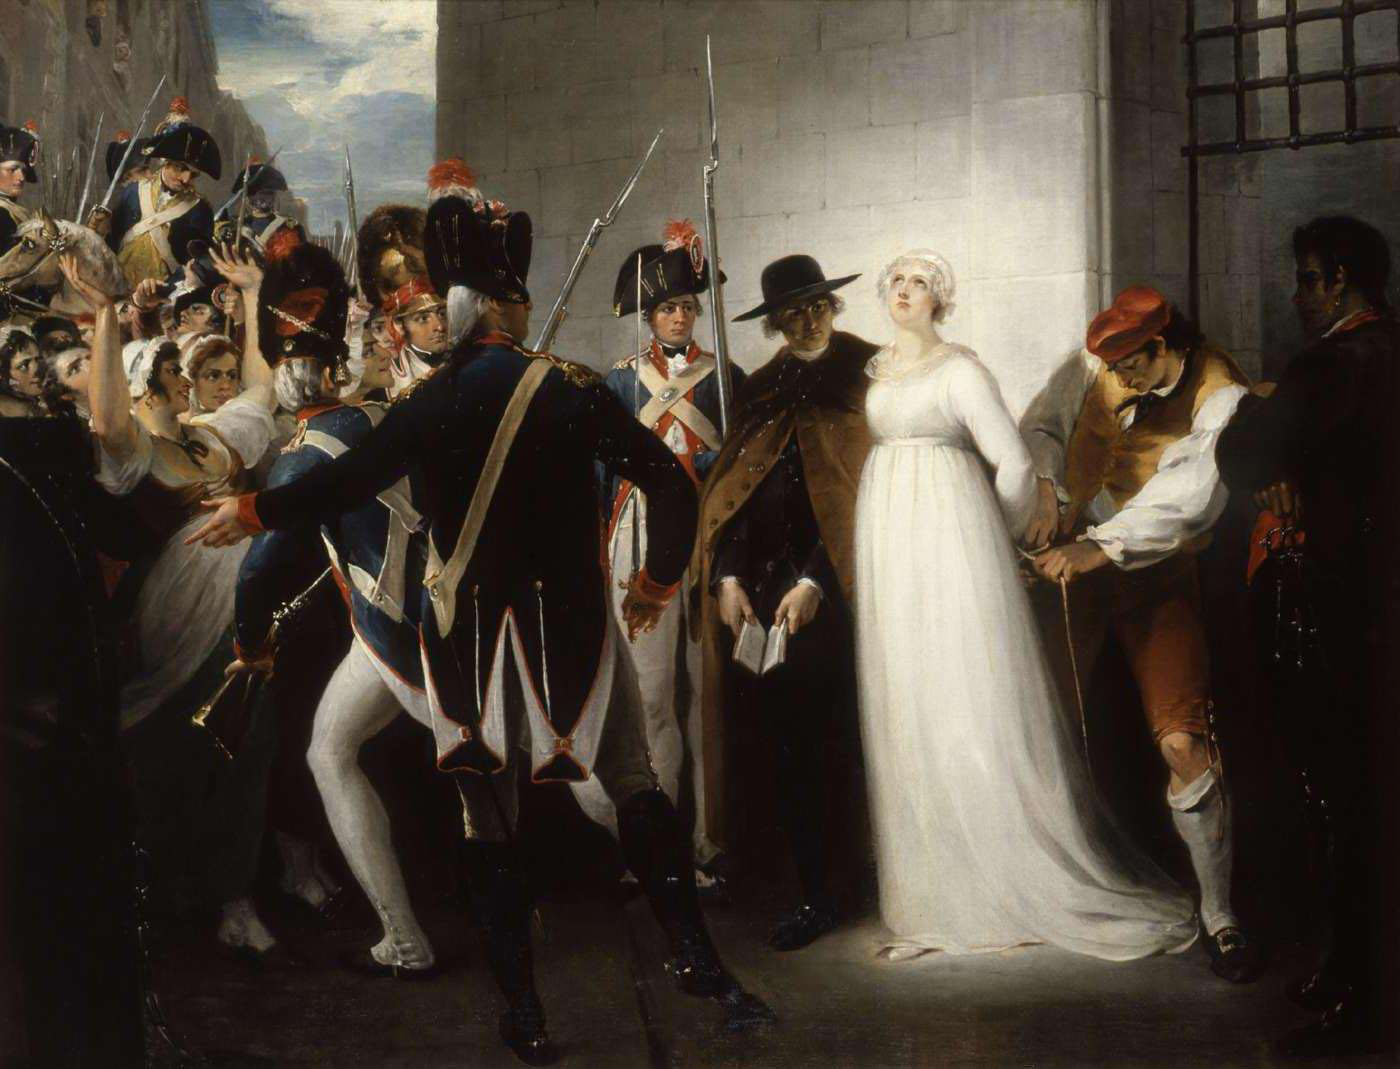 William Hamilton's 'Marie Antoinette Being Taken to Her Execution,' from the Museum of the French Revolution